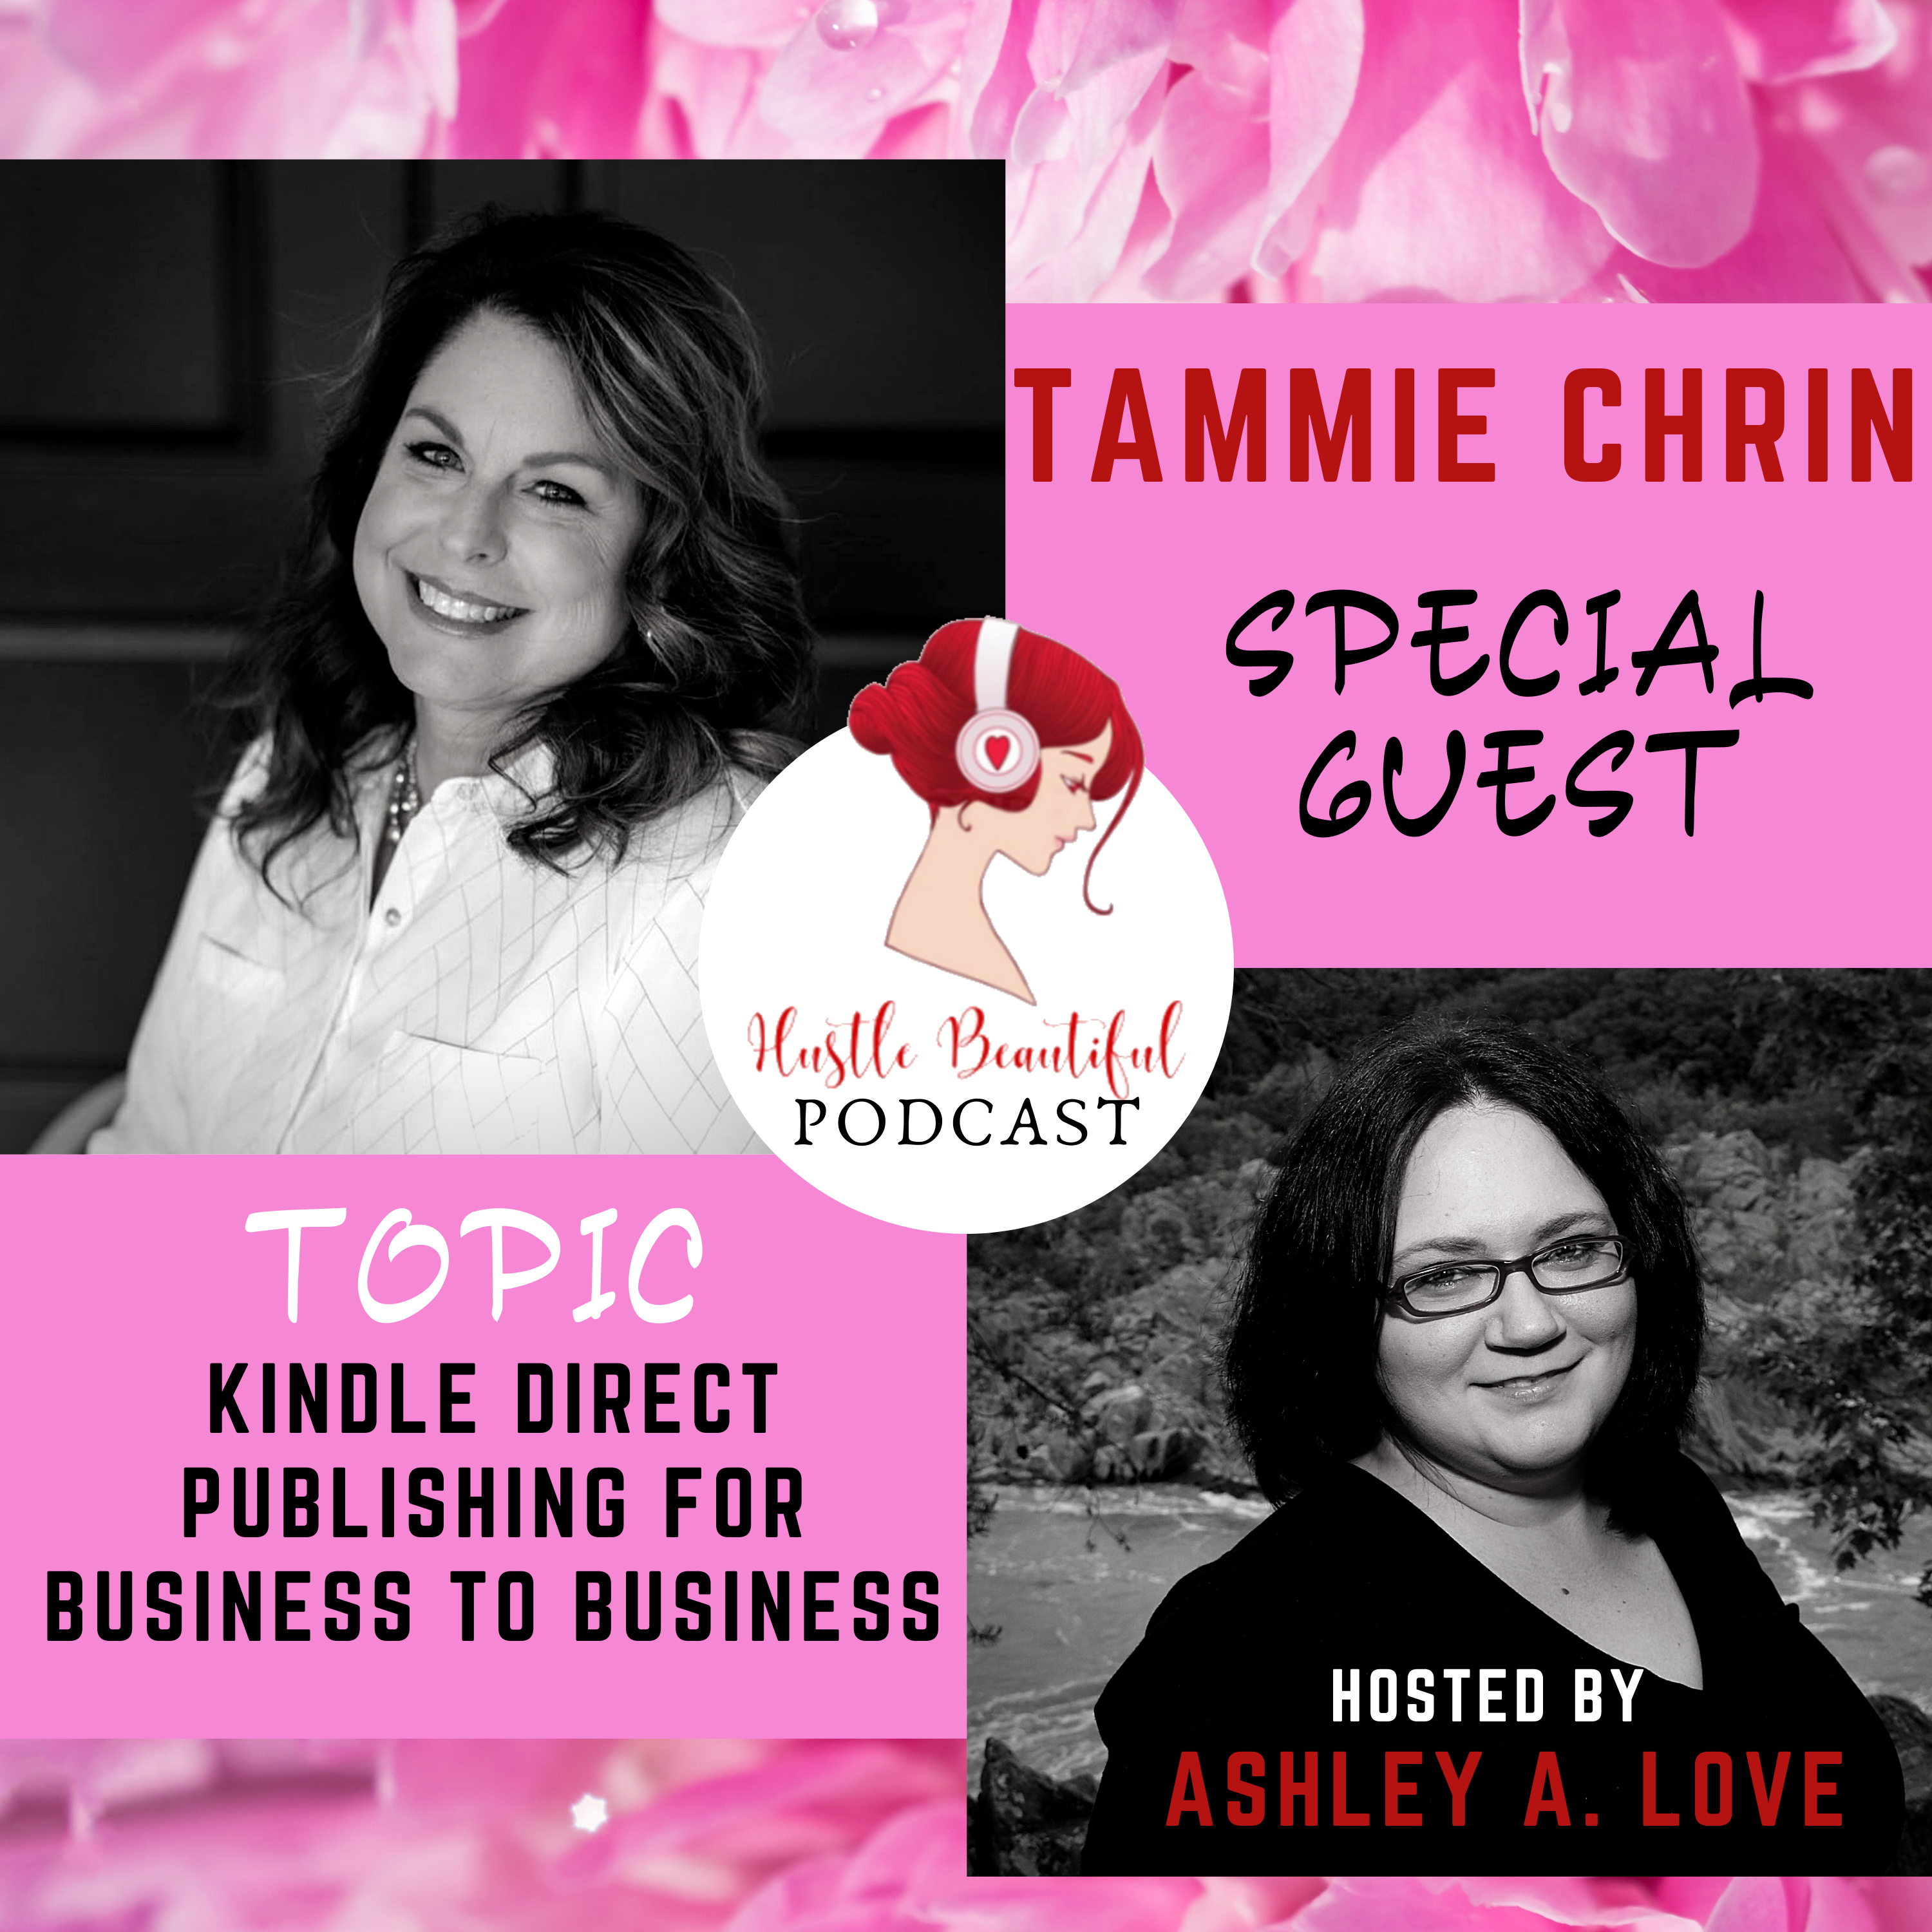 Kindle Direct Publishing for Business to Business with Tammie Chrin